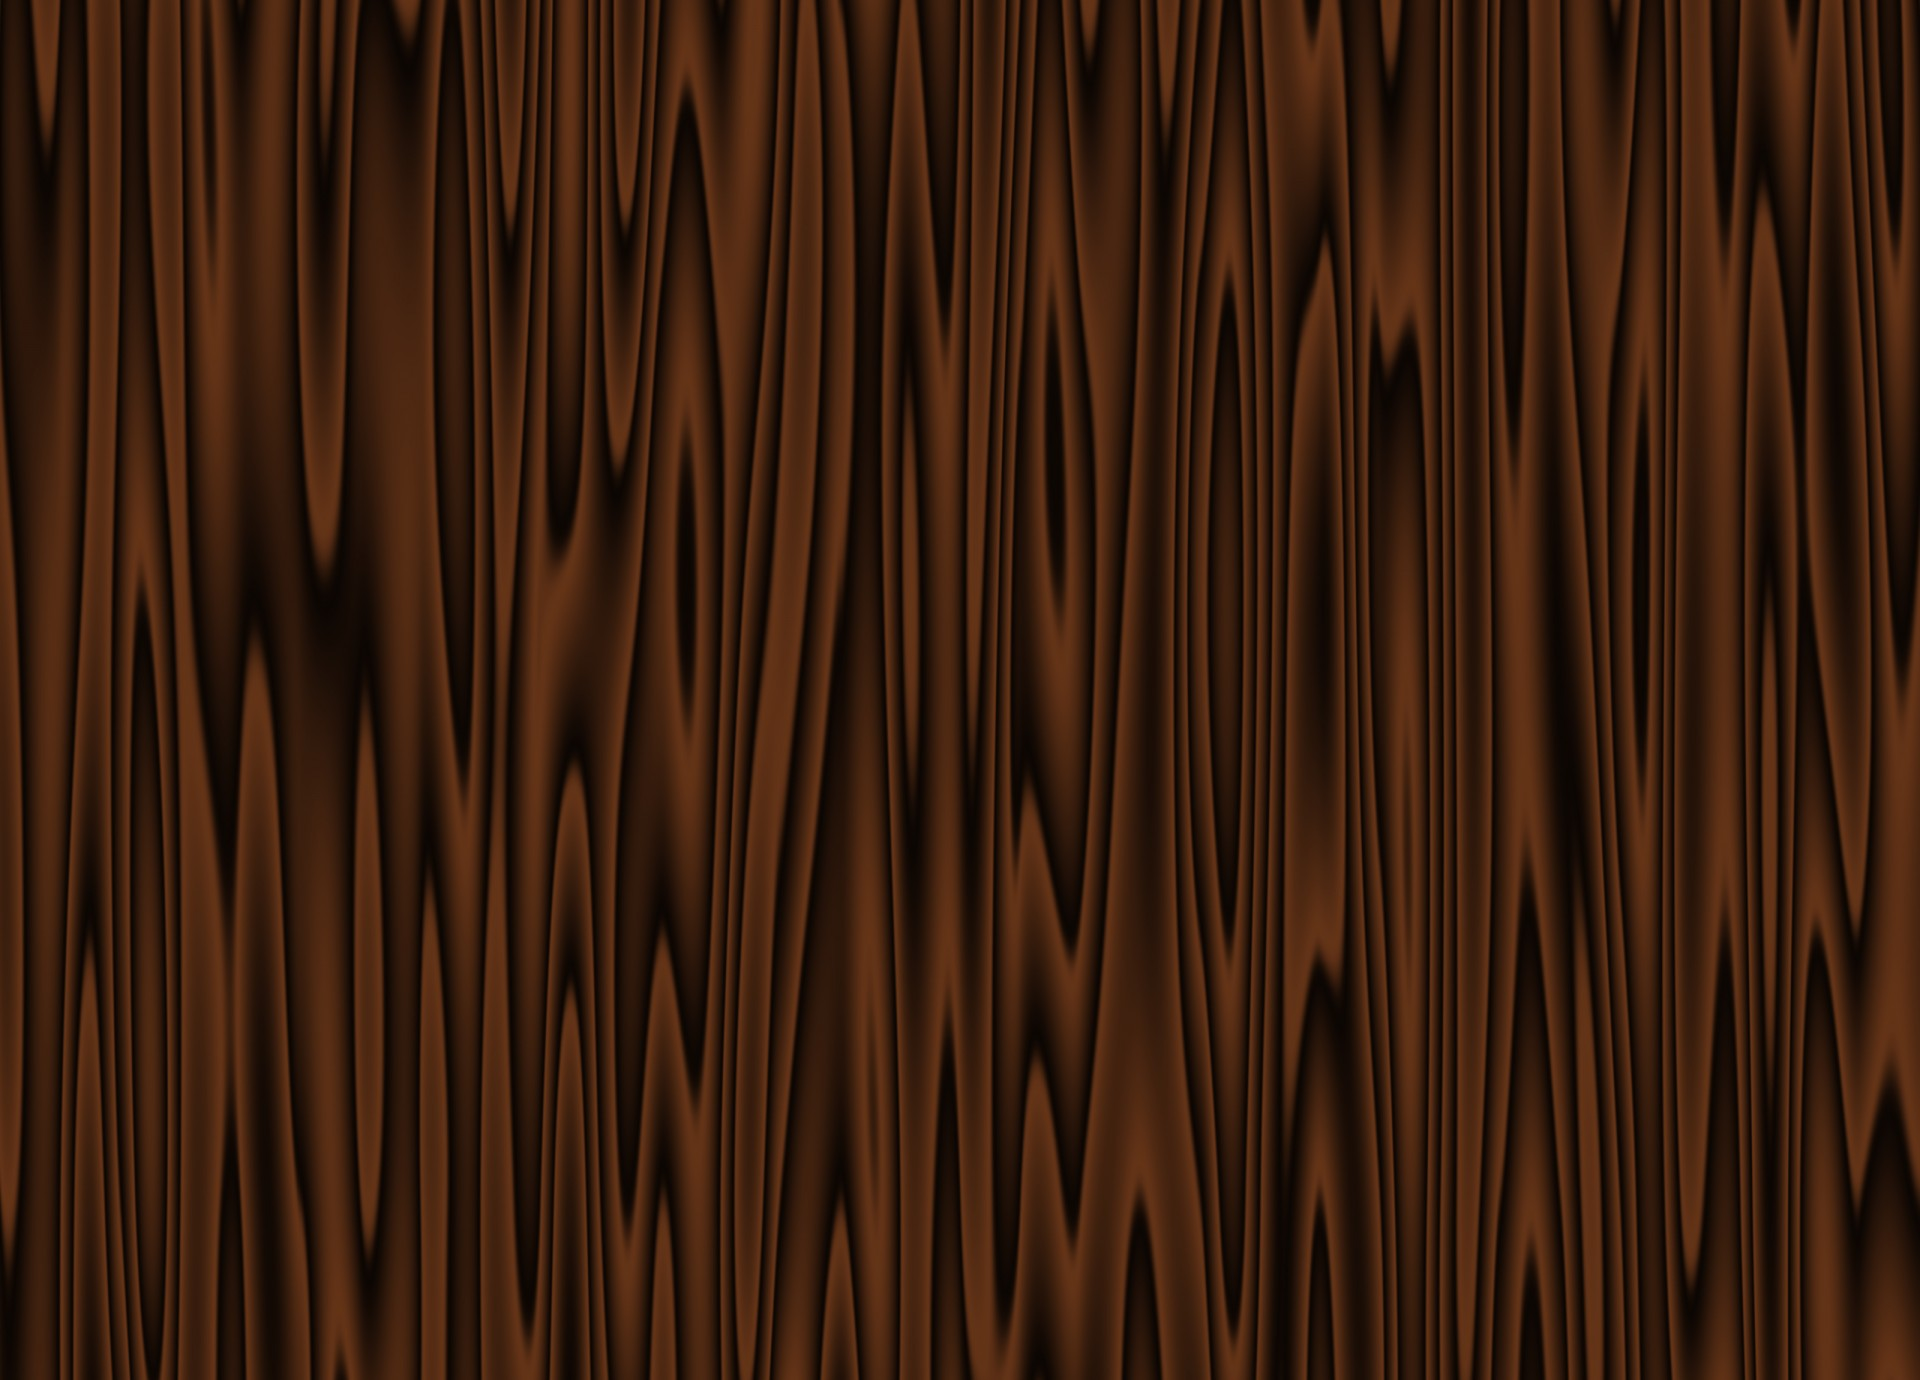 Wood grain effect clipart free stock photo public domain pictures